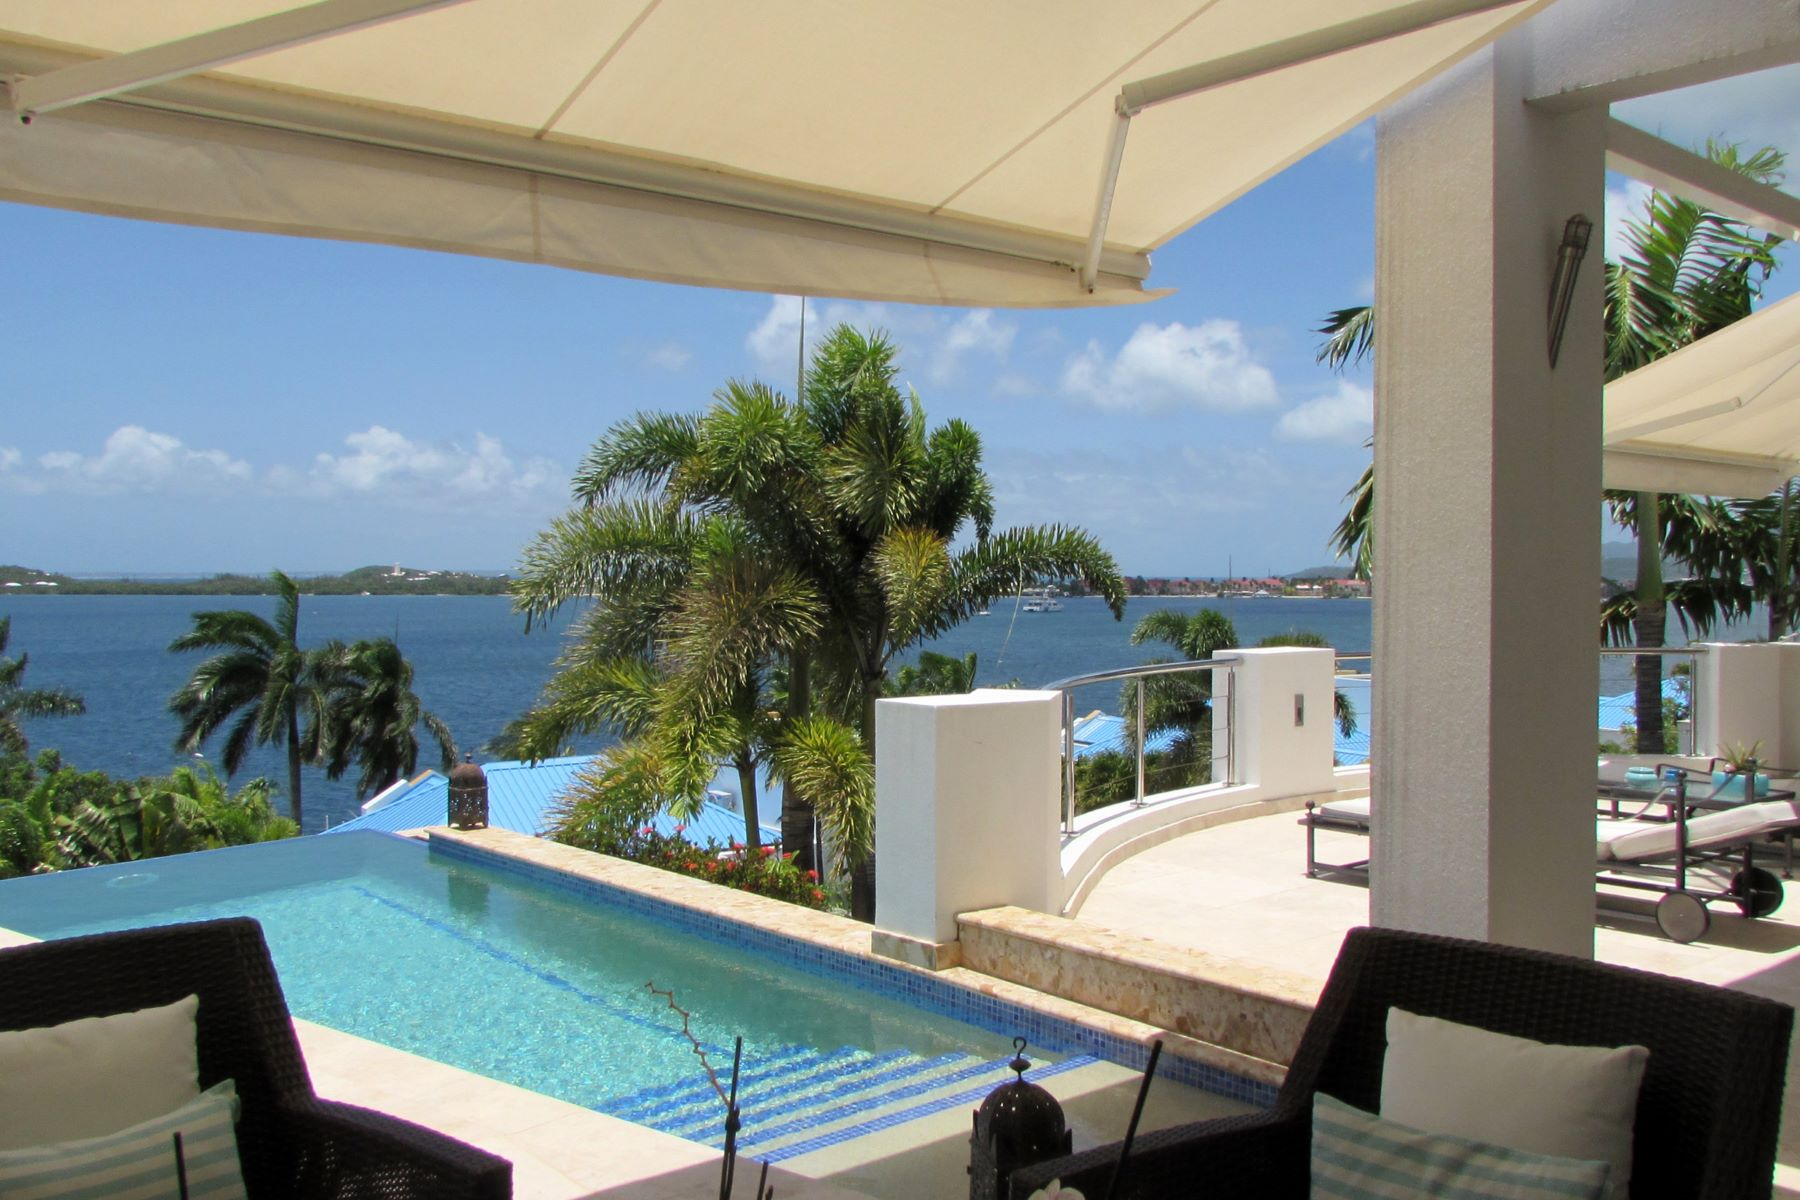 Single Family Home for Sale at Aqua Marina Maho, Cities In Sint Maarten St. Maarten